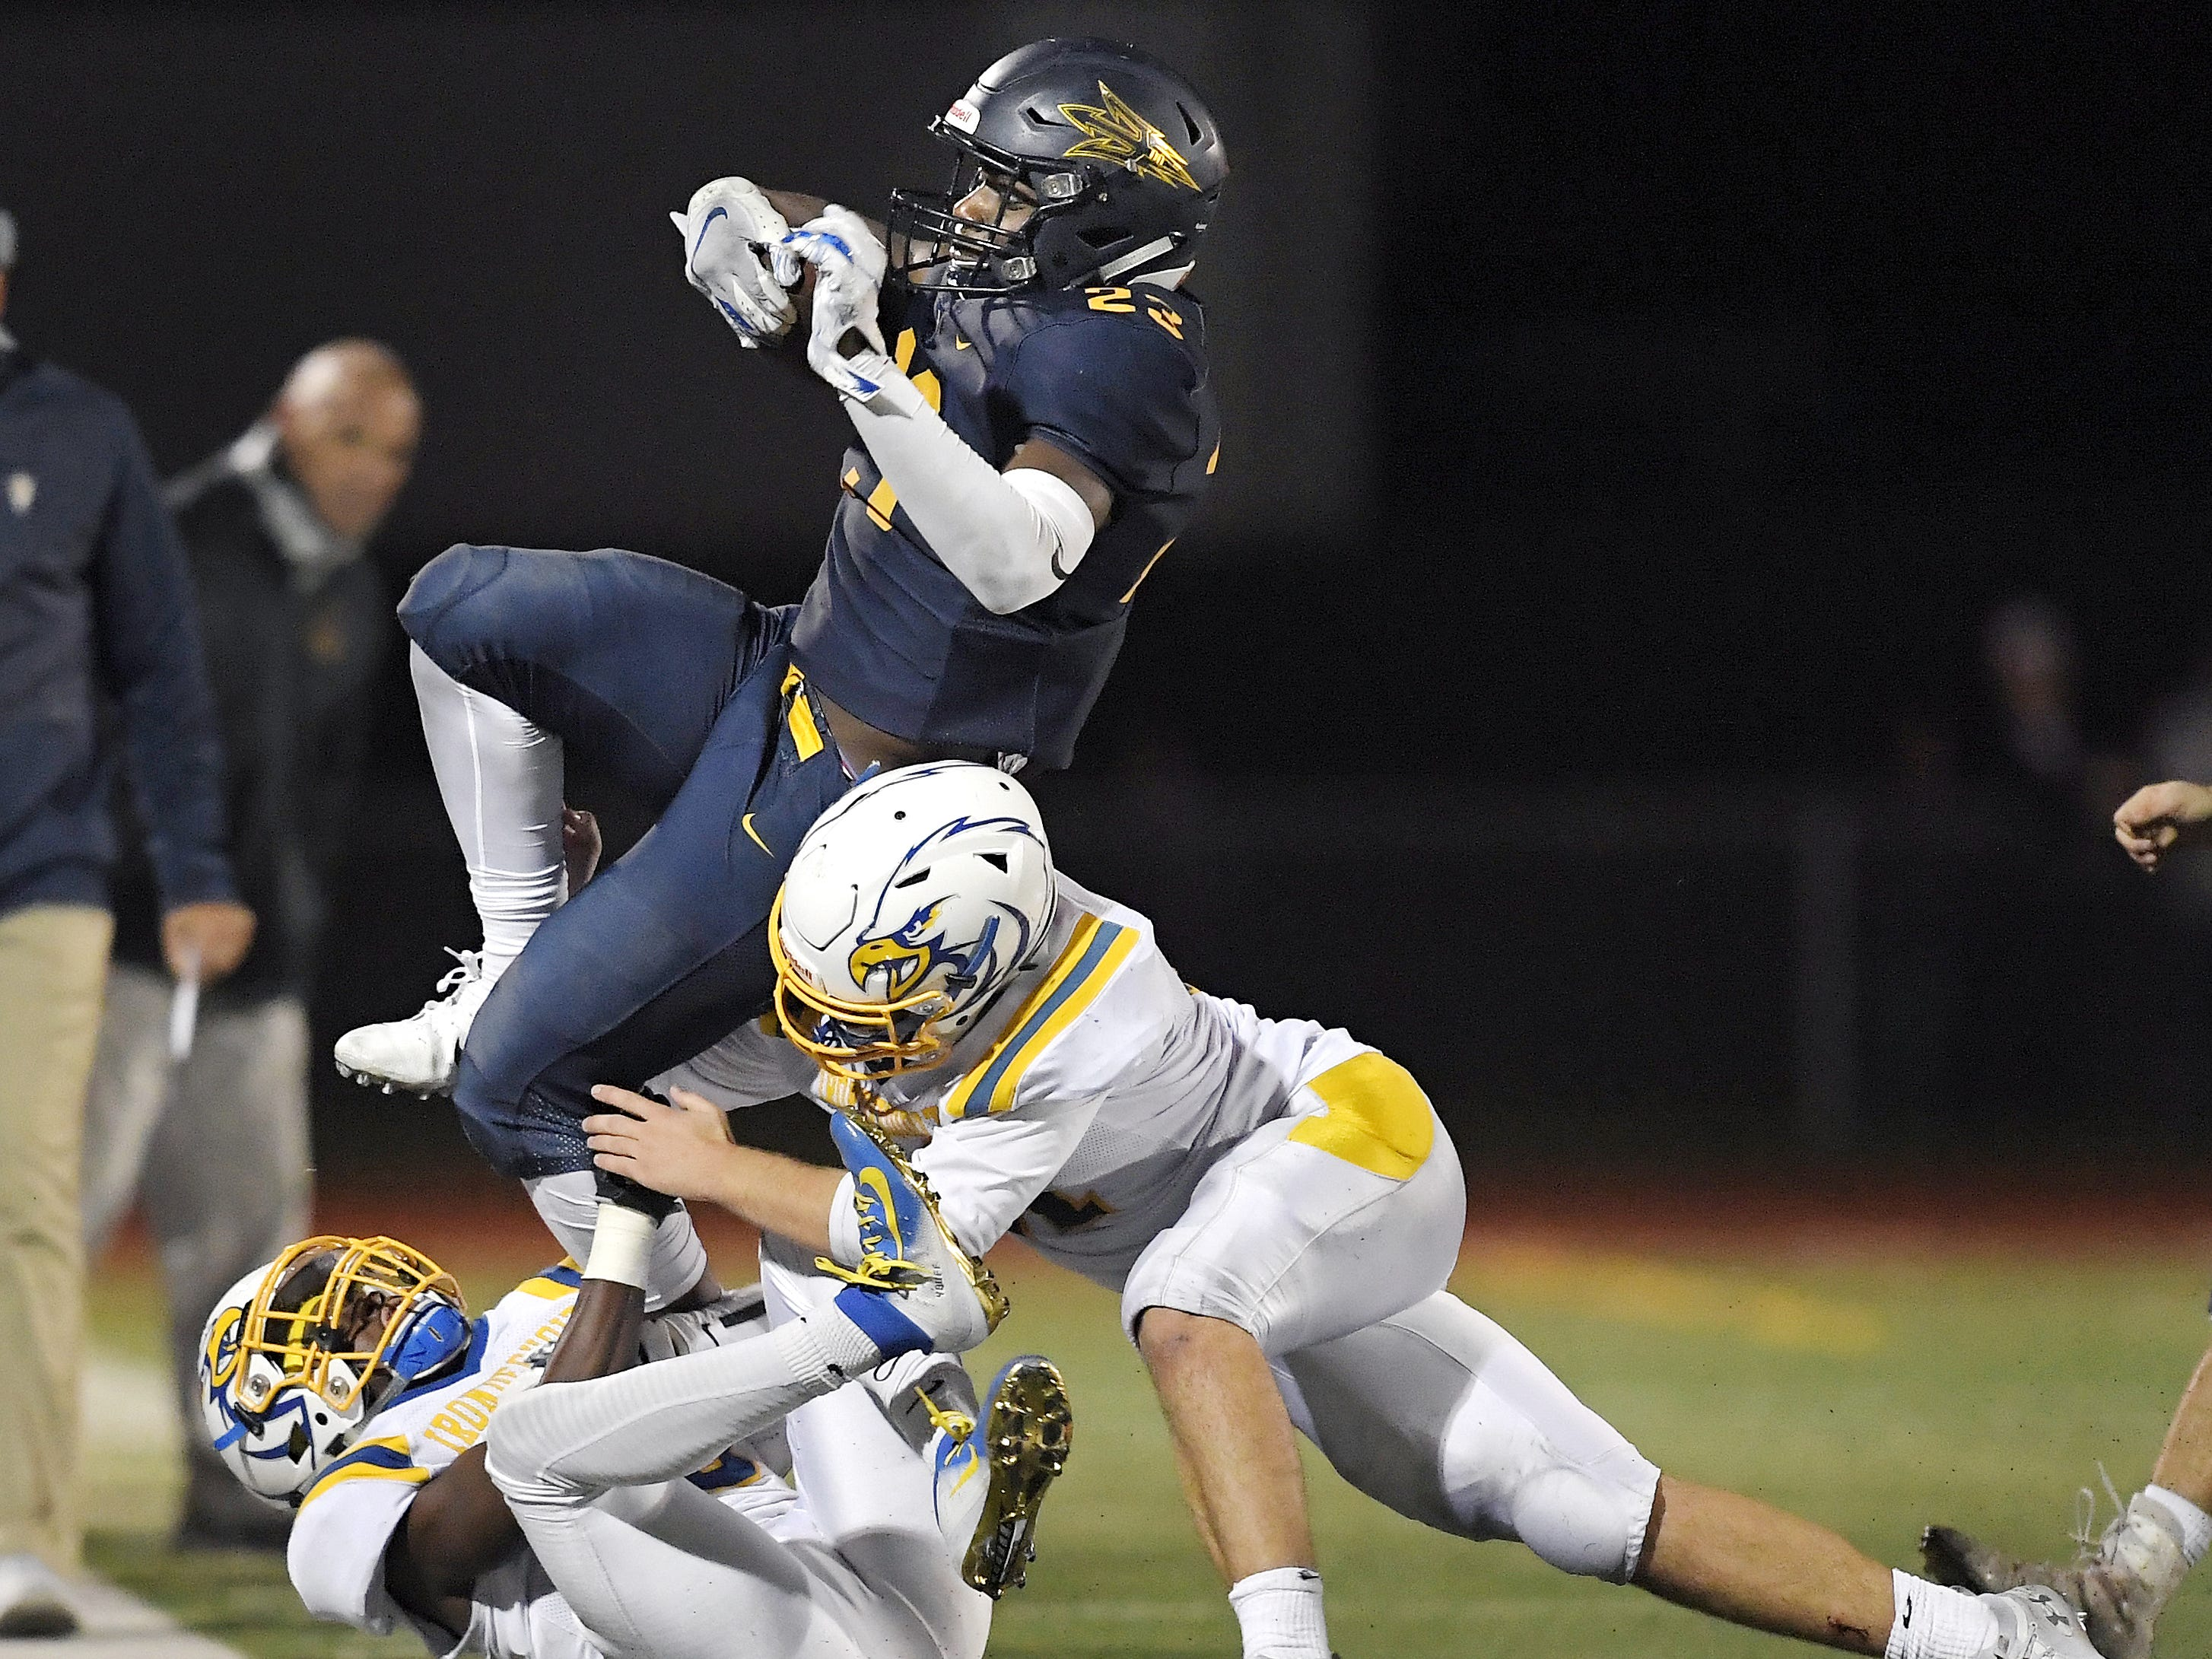 Victor's Rushawn Baker, top, is driven out of bounds by Irondequoit's Purcell Brown, left, and Liam Smith  during a regular season game played at Victor High School, Sunday, Sept. 23, 2018. Irondequoit beat Victor 28-21.